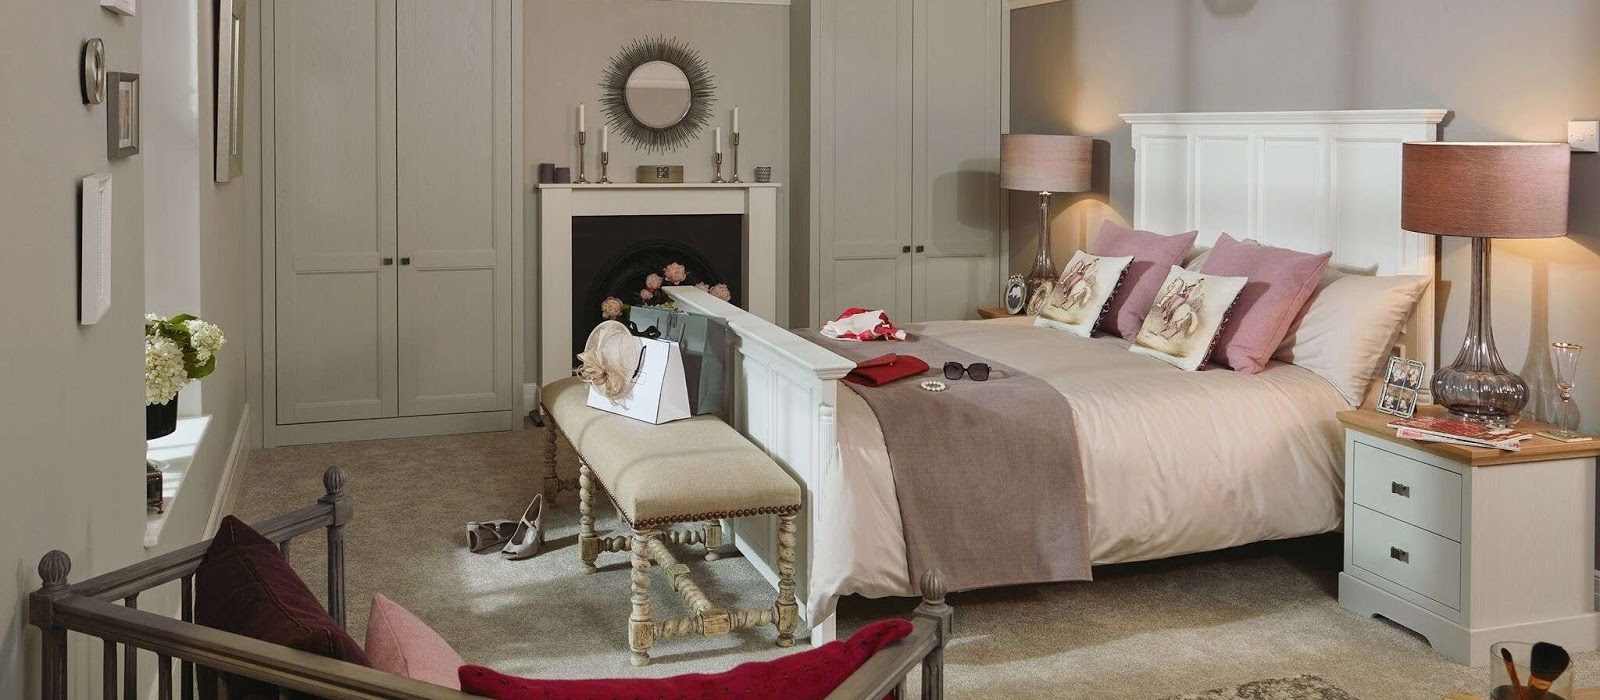 Bedroom furniture | WElford | Heart Kitchens